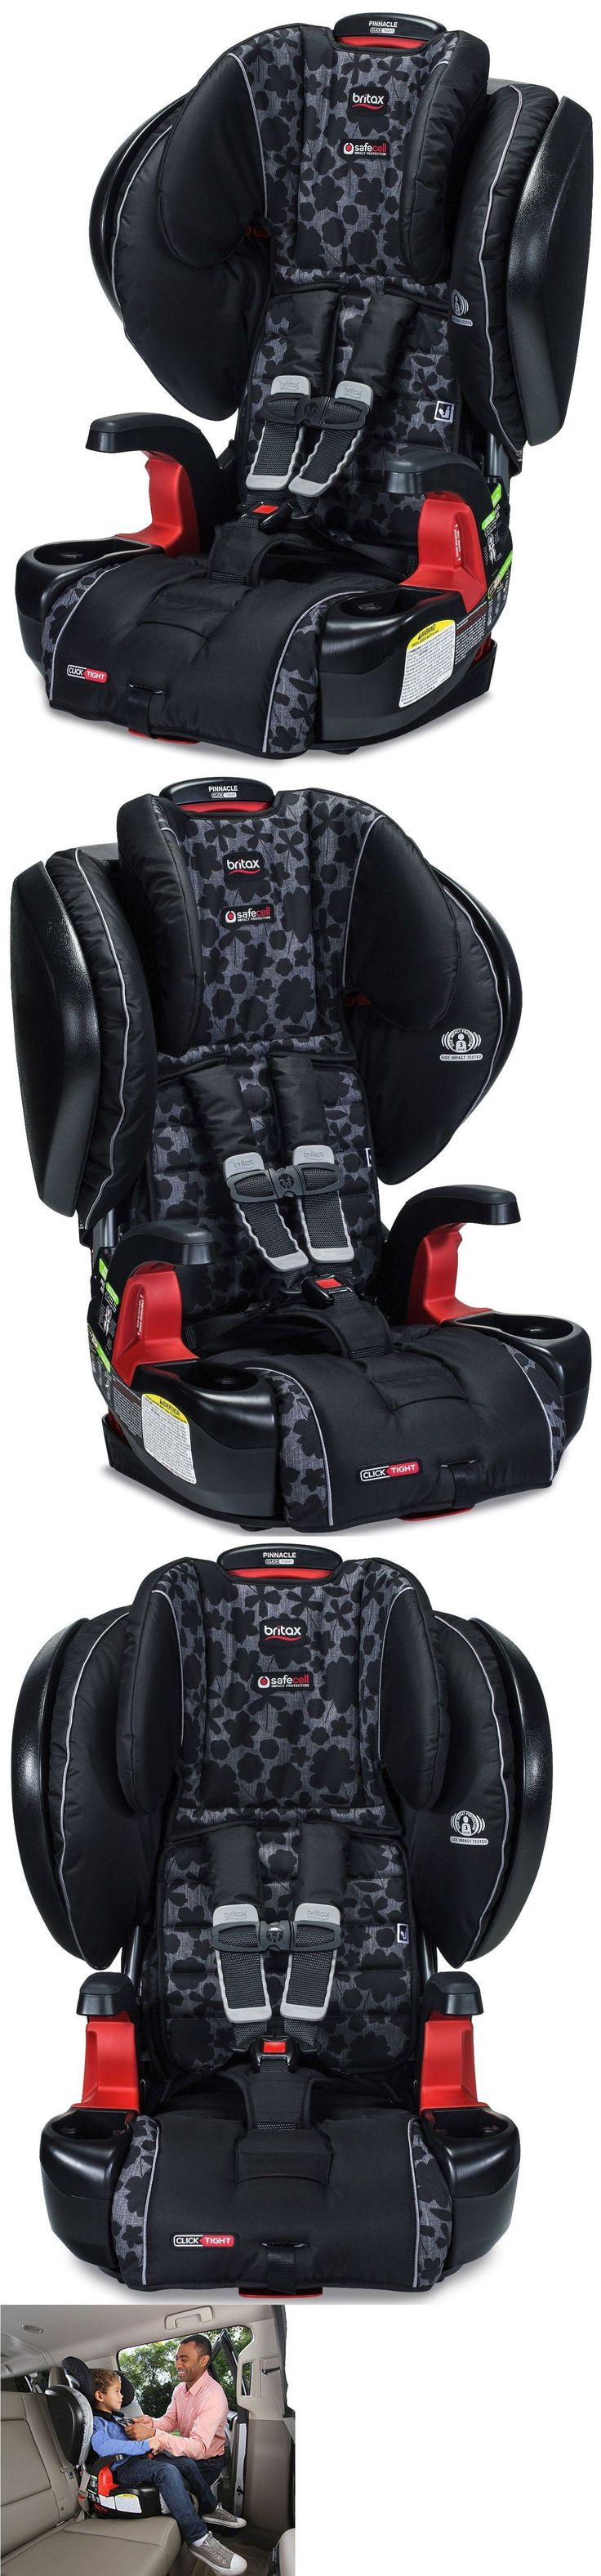 Other Car Safety Seats 2987: Britax Pinnacle Clicktight Combination Harness-2-Booster Car Seat Kate New 2017 -> BUY IT NOW ONLY: $312 on eBay!